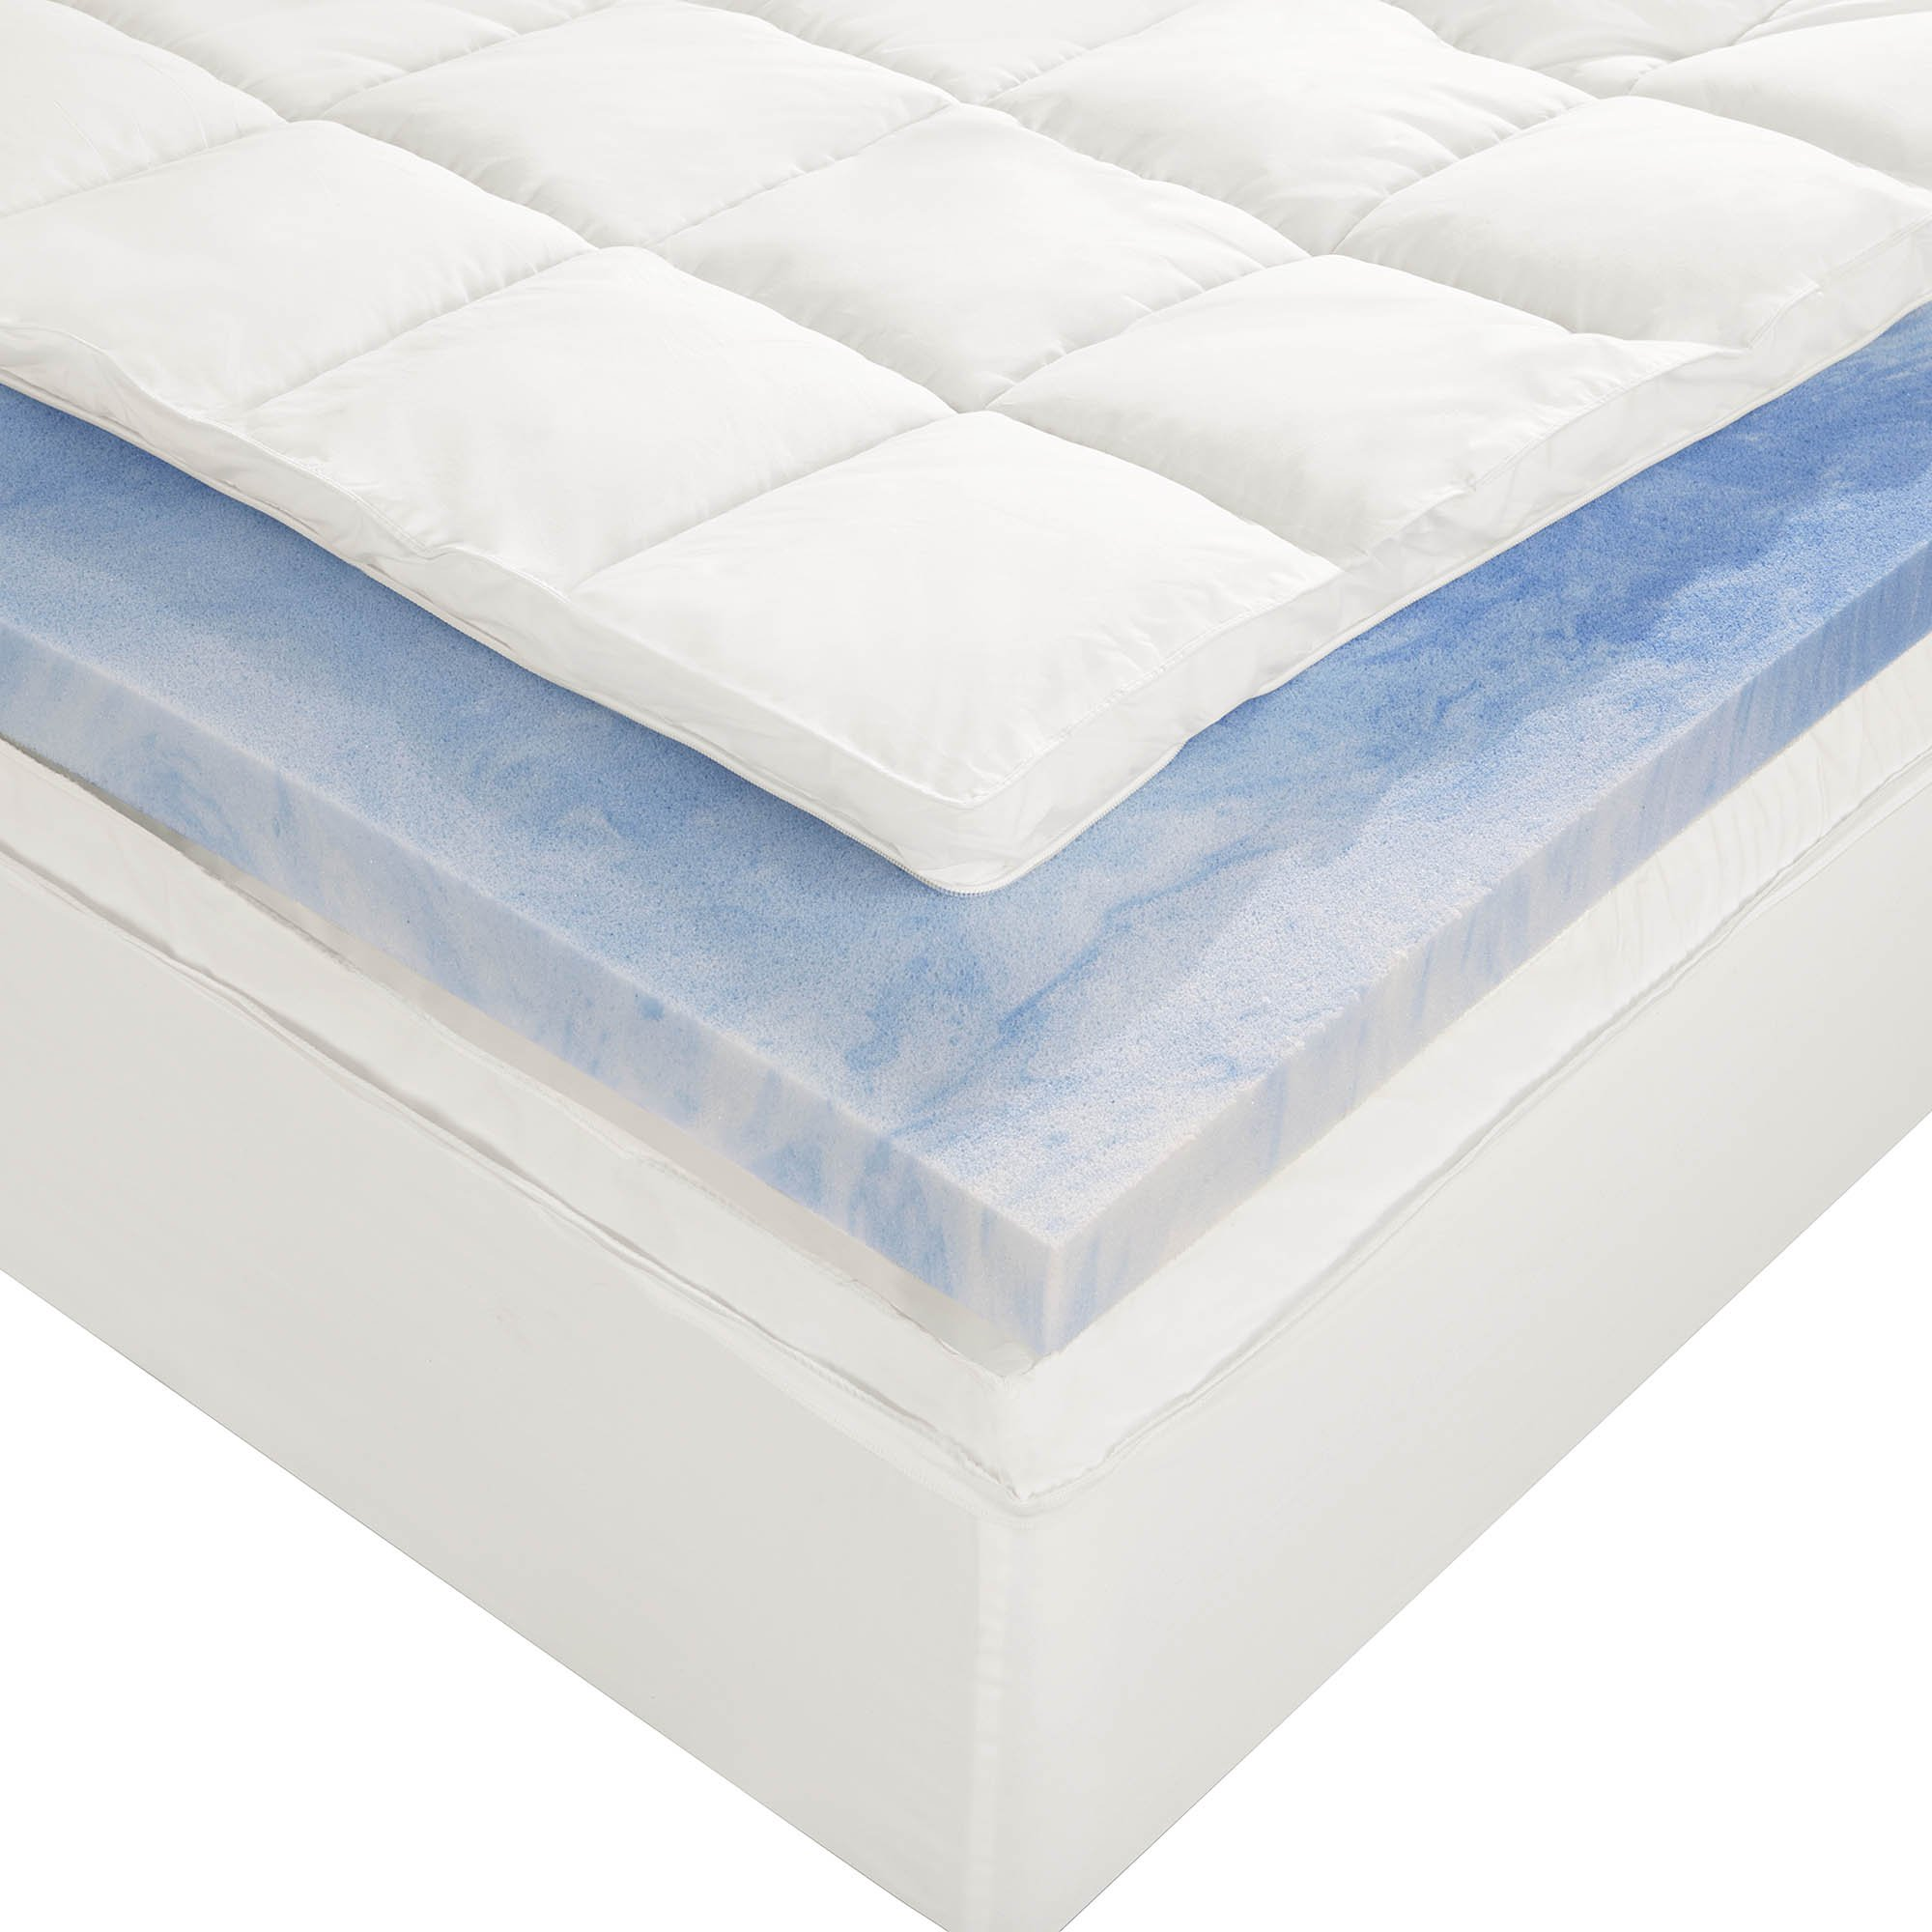 Sleep innovations 4 inch dual layer mattress topper gel memory foam and plu ebay 4 memory foam mattress topper